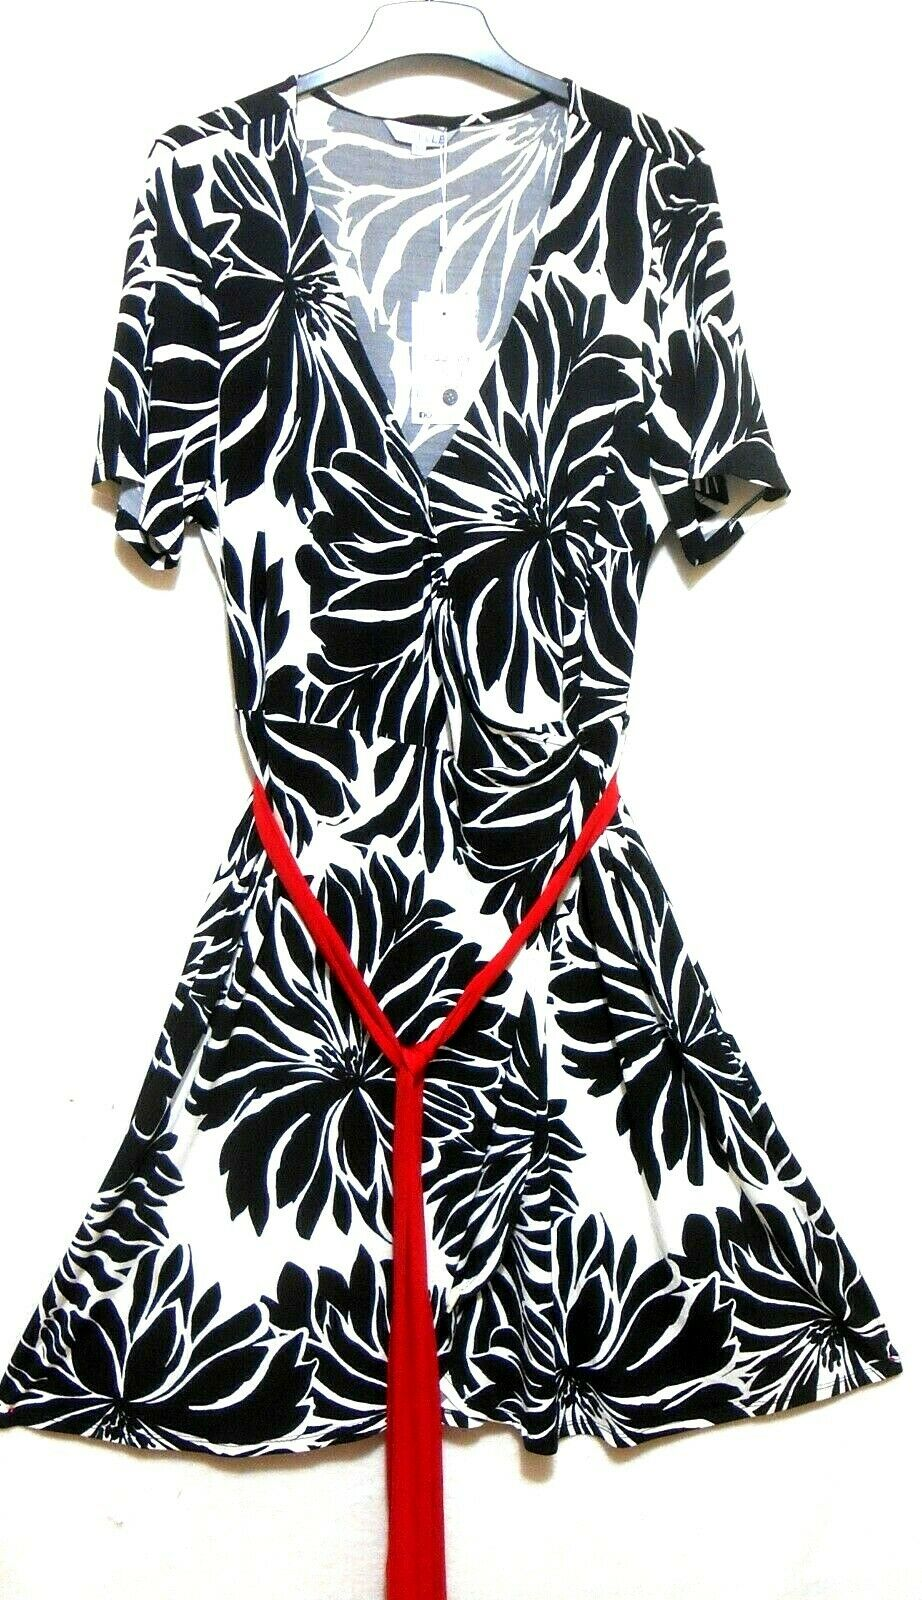 Estelle jersey dress, black & white floral, sz. 18, ***NWT